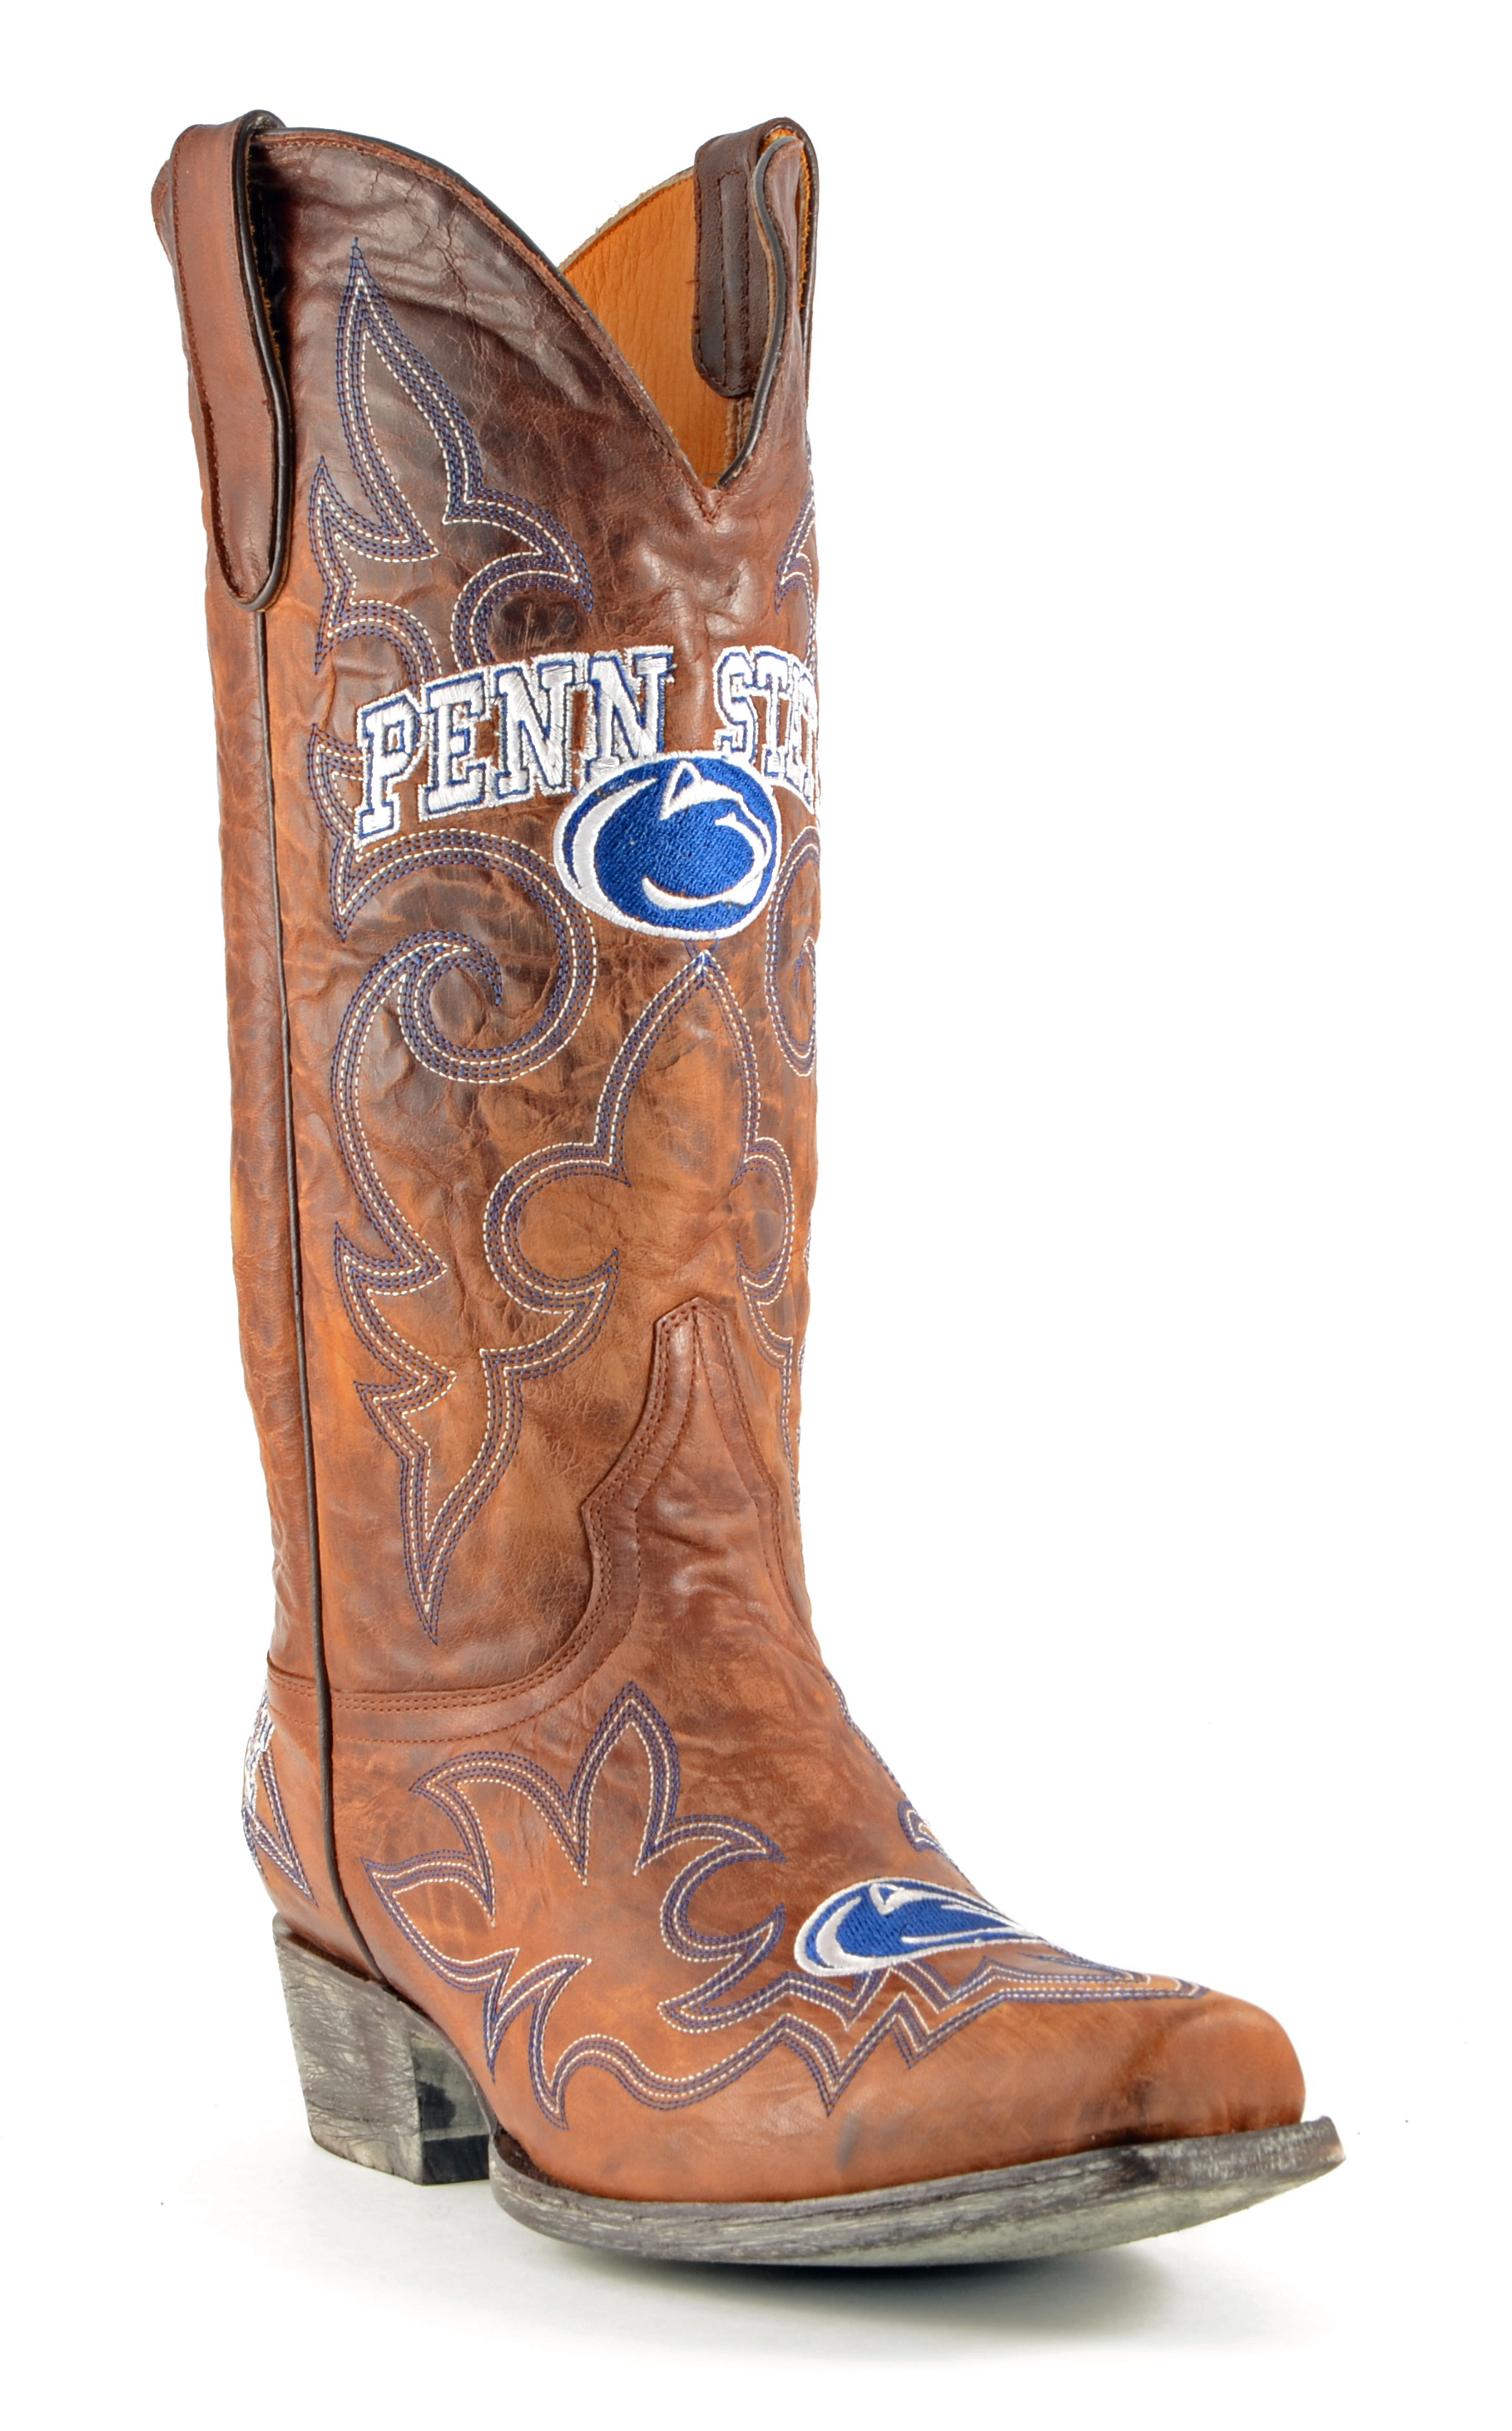 Gameday Boots Mens Leather Penn State Cowboy Boots by GameDay Boots